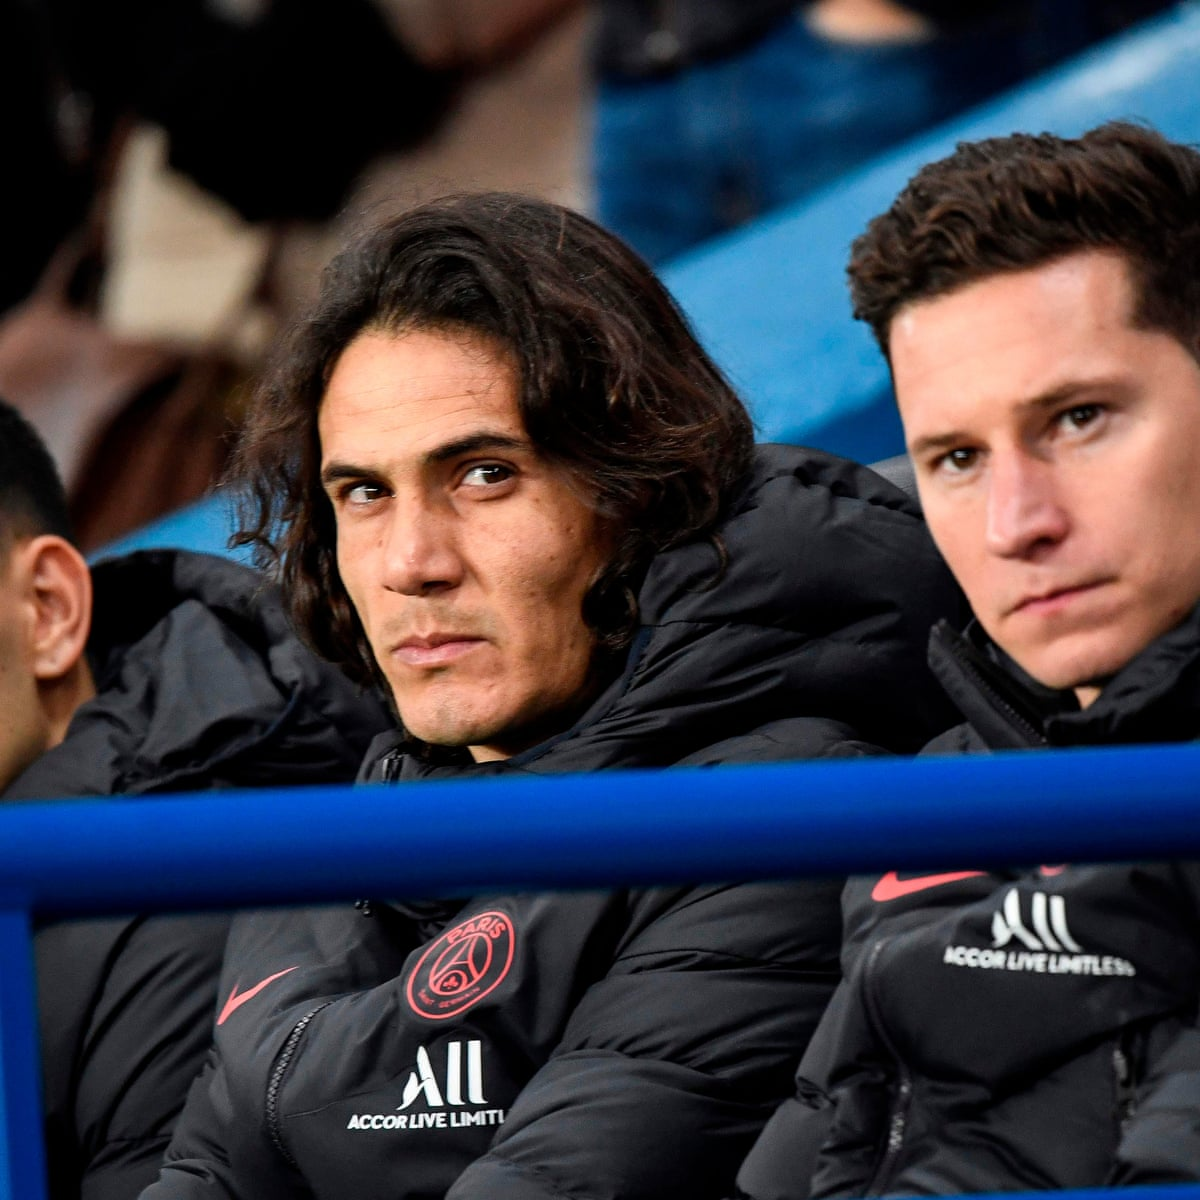 Edinson Cavani Set To Choose Atletico Over Chelsea If Deal With Psg Is Struck Chelsea The Guardian